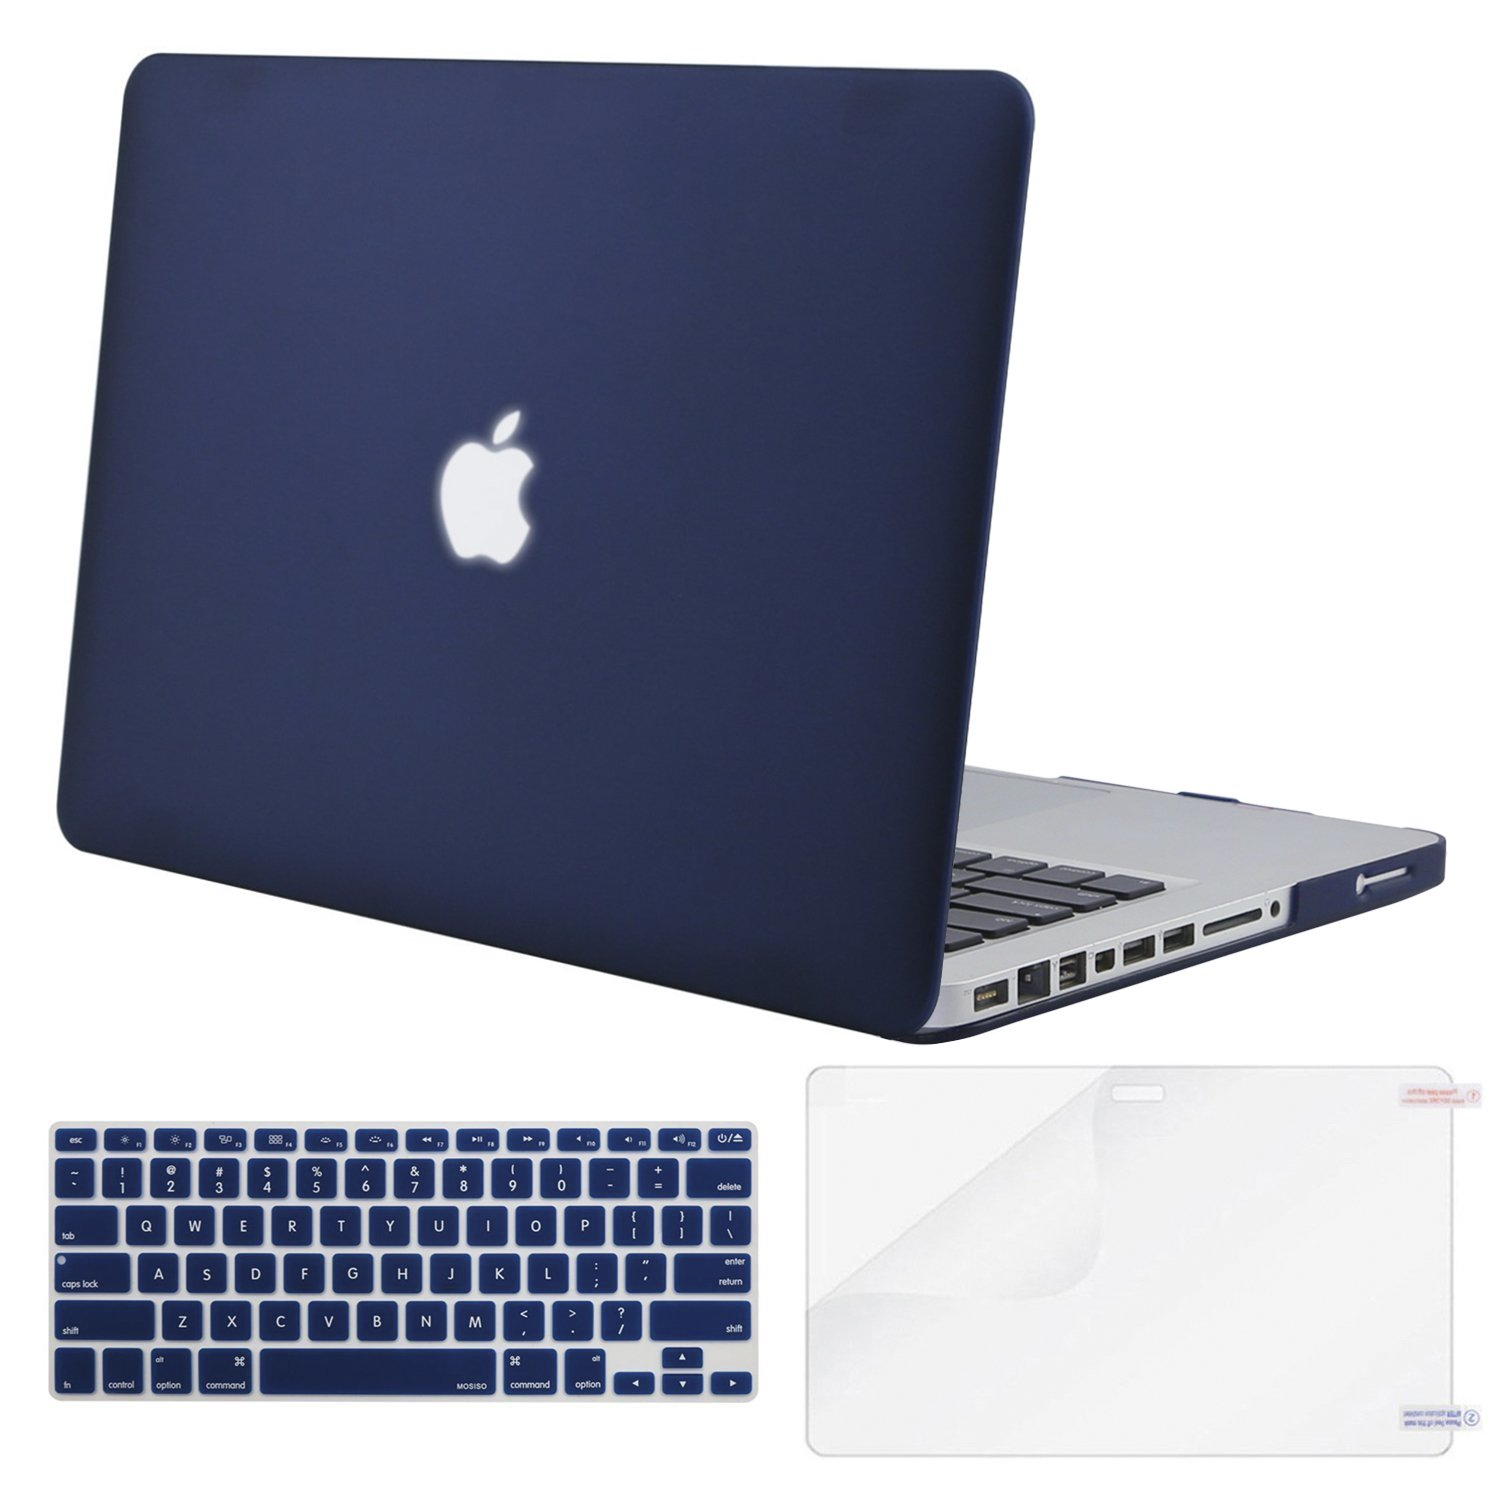 MOSISO Plastic Hard Shell Case & Keyboard Cover & Screen Protector Only Compatible with Old Version MacBook Pro 13 Inch (A1278, with CD-ROM), Release Early 2012/2011/2010/2009/2008, Navy Blue by MOSISO